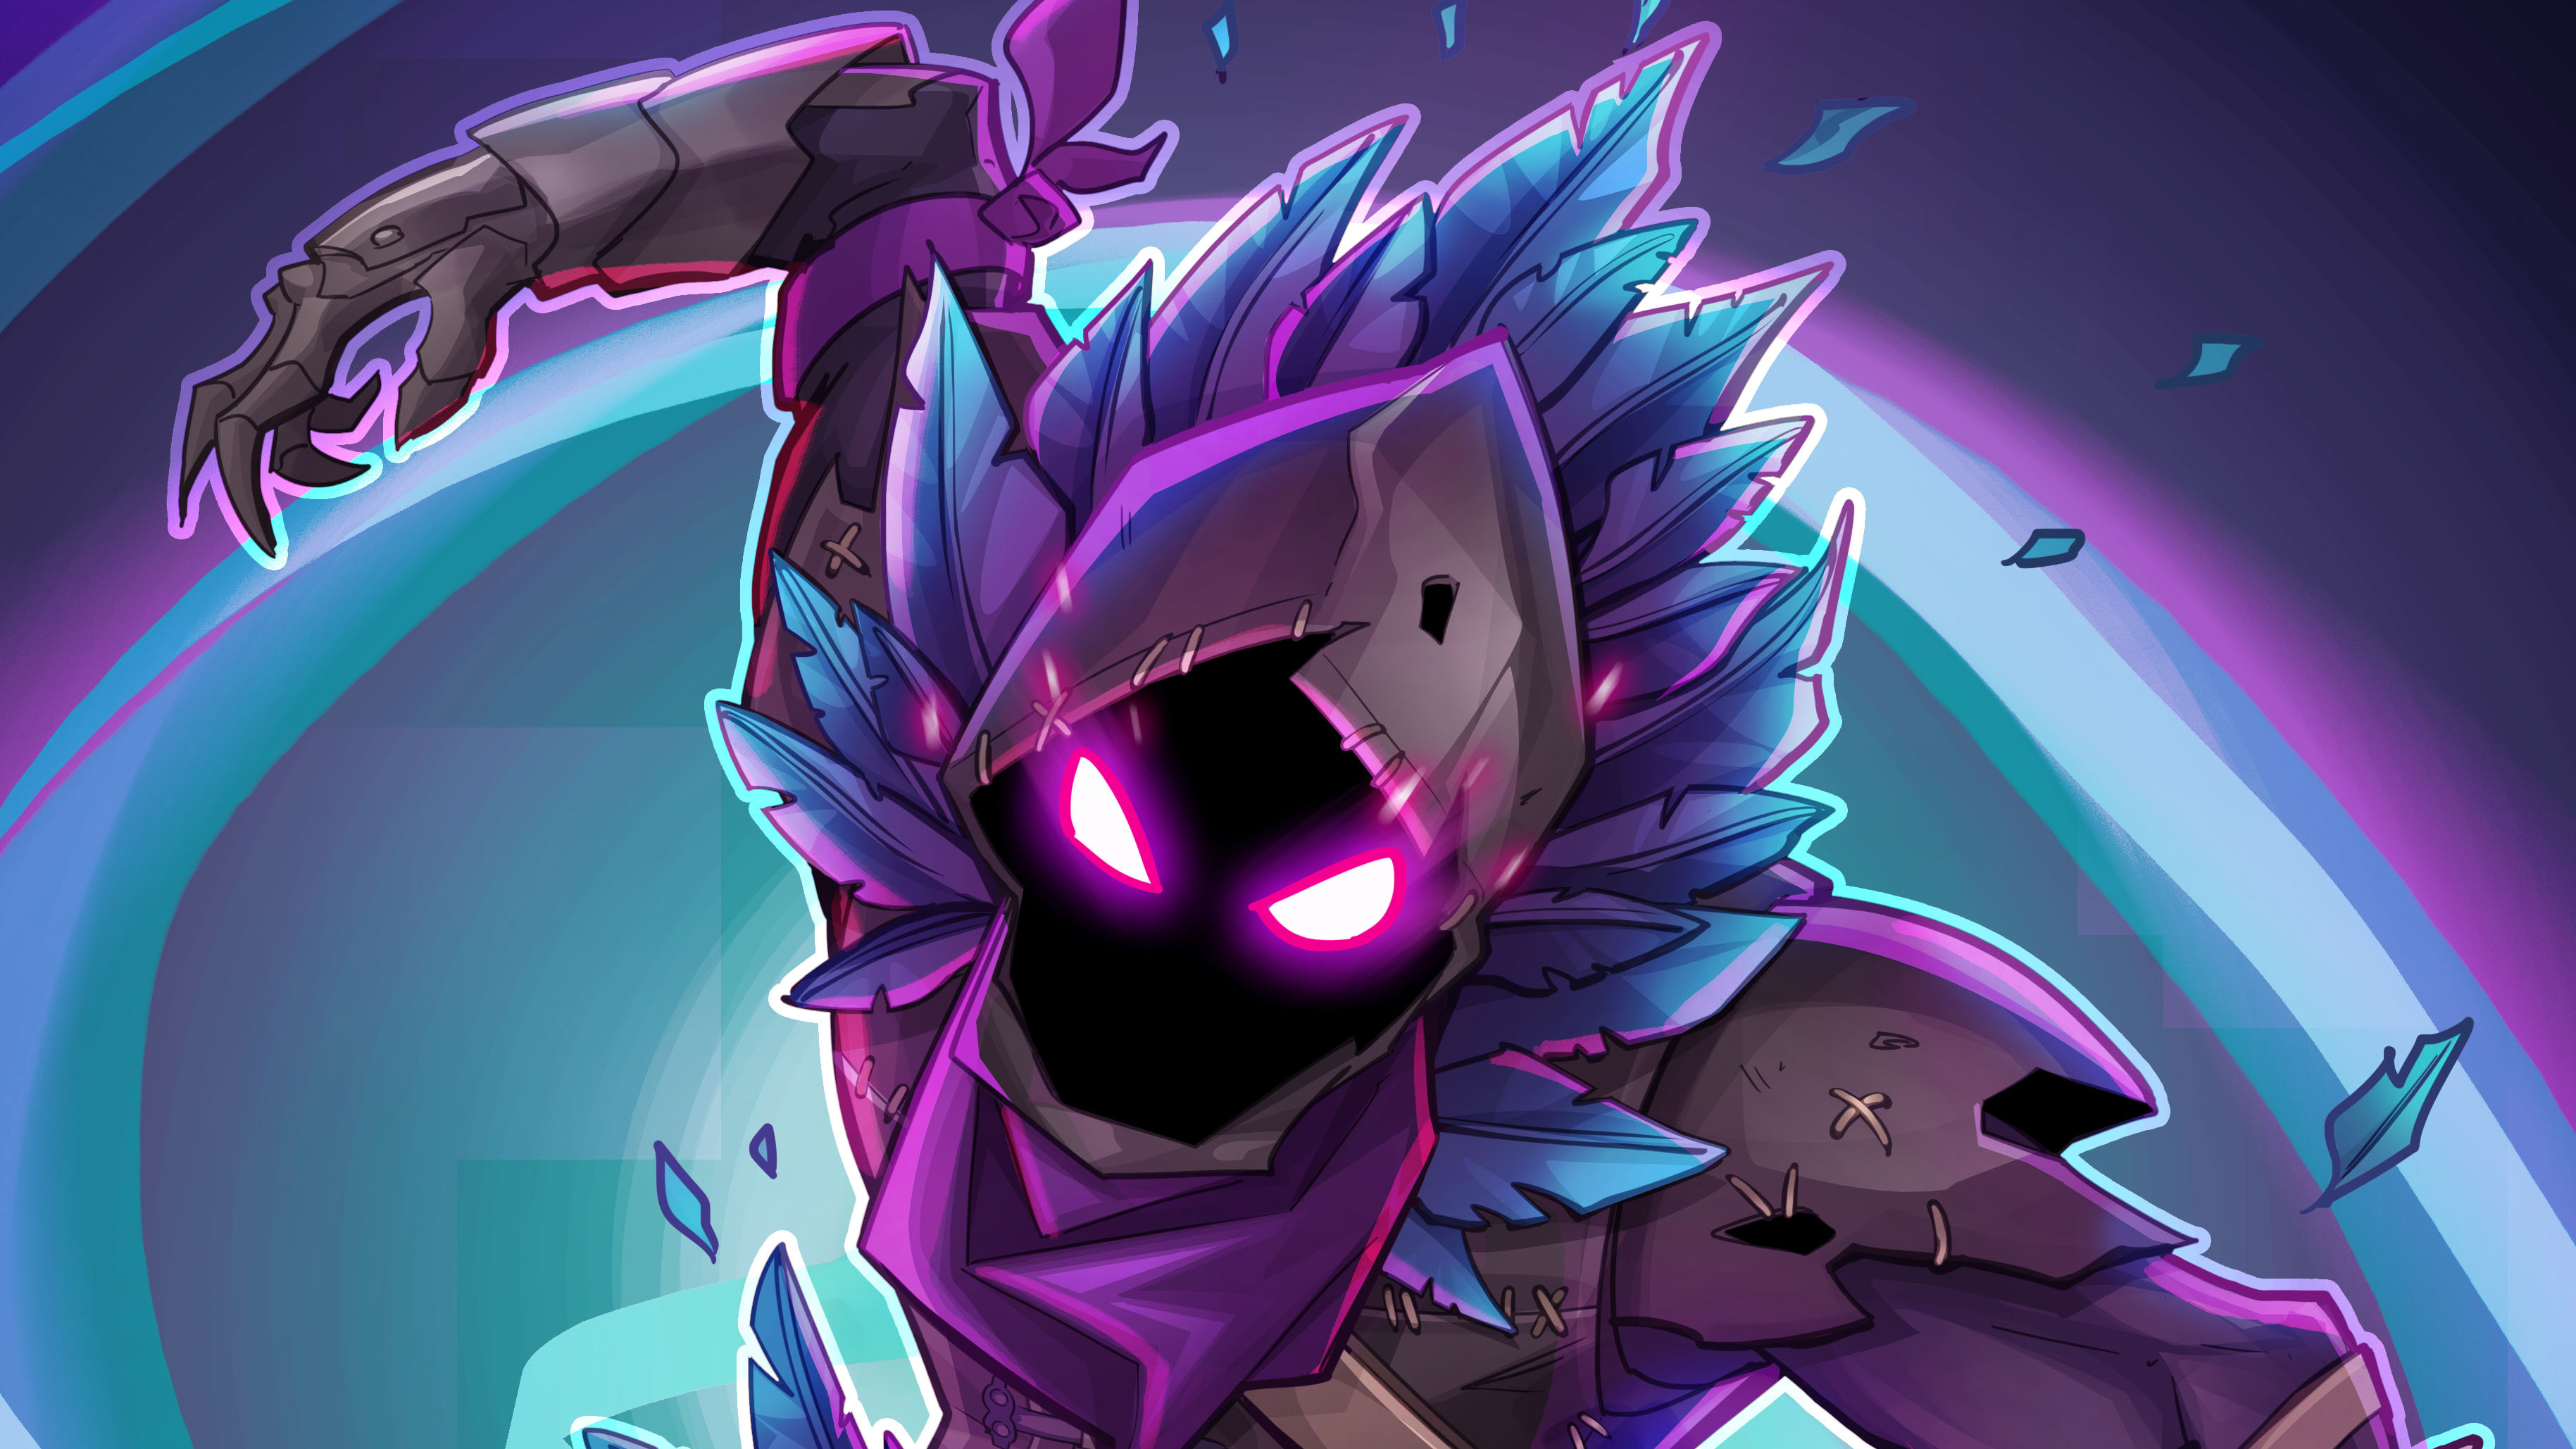 Fortnite Raven Fan Art Hd Games 4k Wallpapers Images Backgrounds